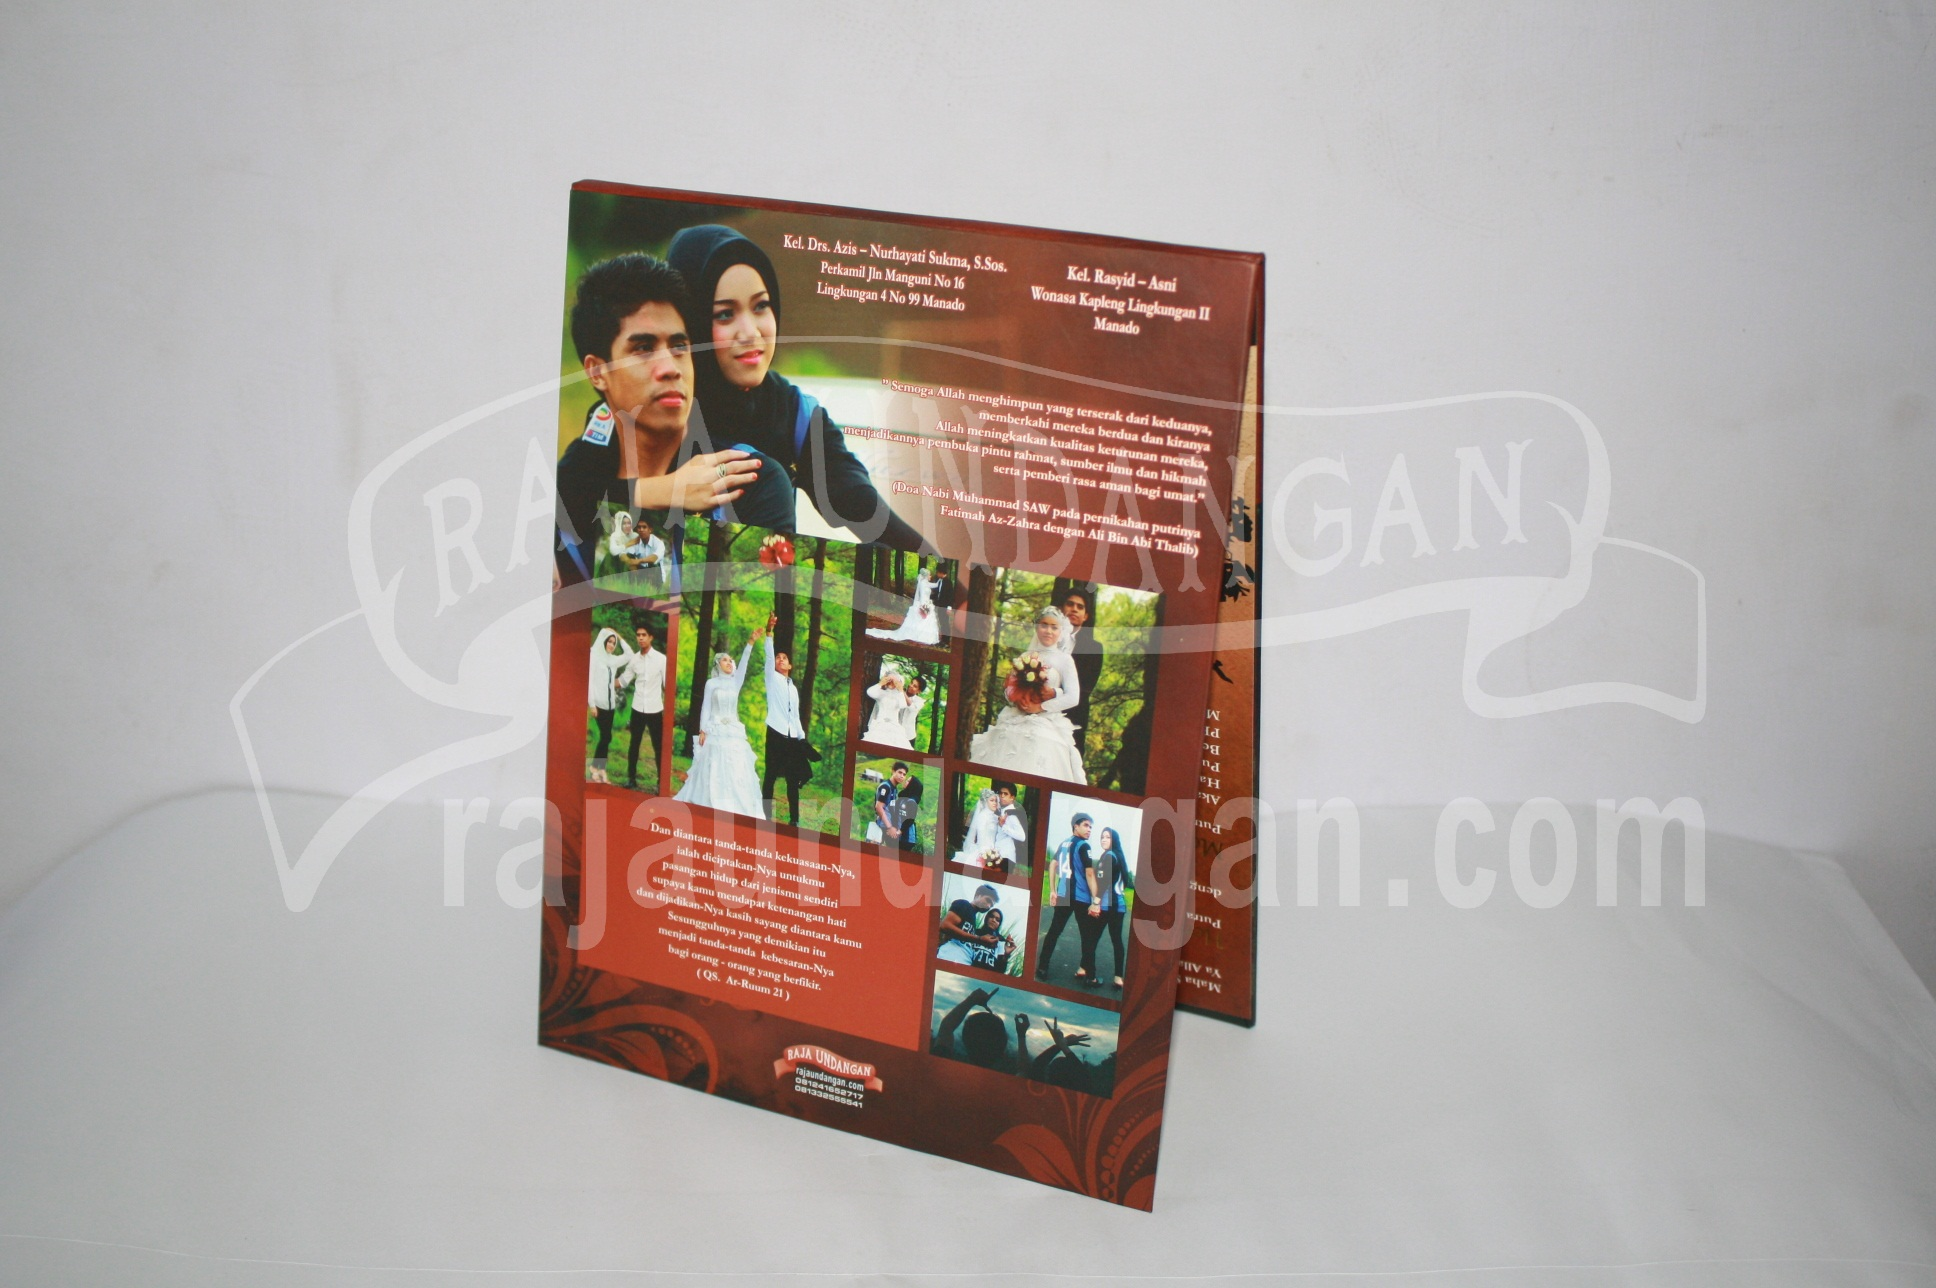 Undangan Pernikahan Hardcover Pop Up Heri dan Mona EDC 43 13 - Pesan Wedding Invitations Murah di Warugunung